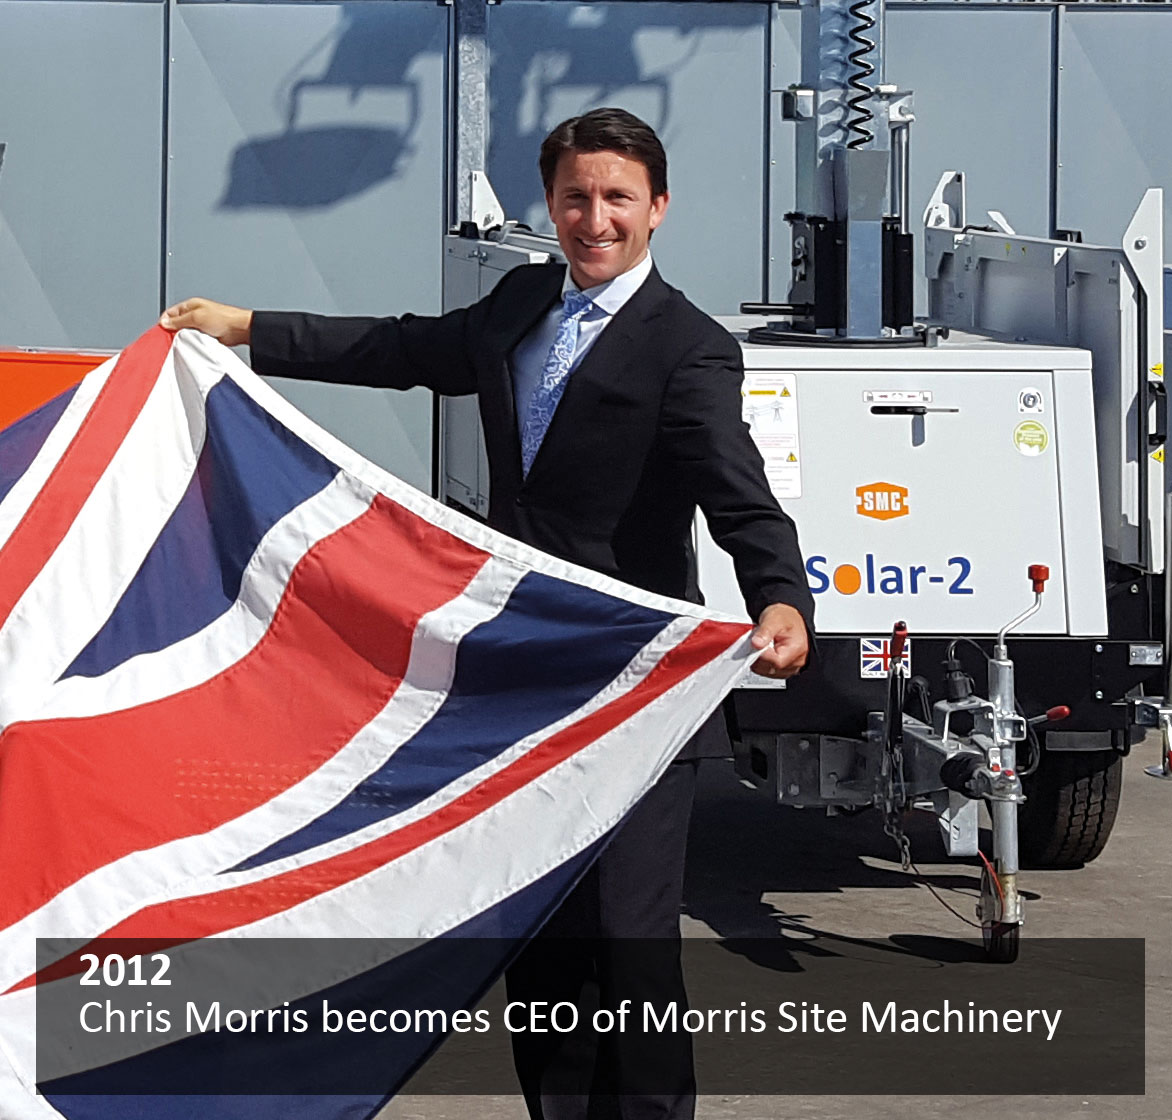 Chris Morris becomes CEO of Morris Site Machinery